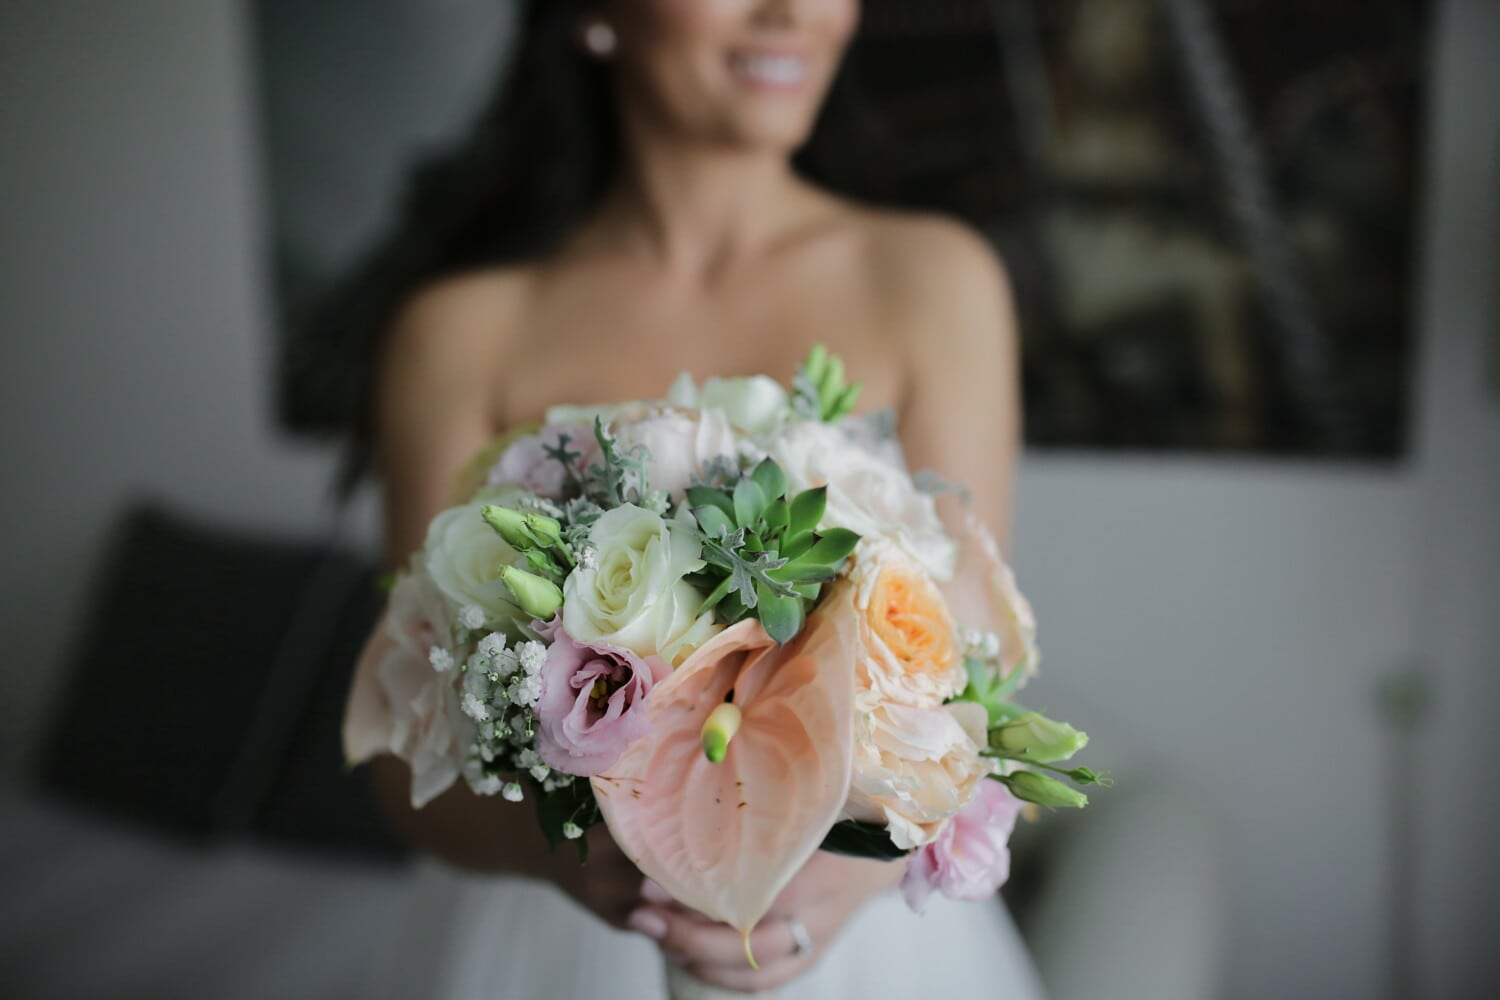 bedroom, bride, wedding bouquet, smiling, marriage, wedding, bouquet, love, decoration, woman